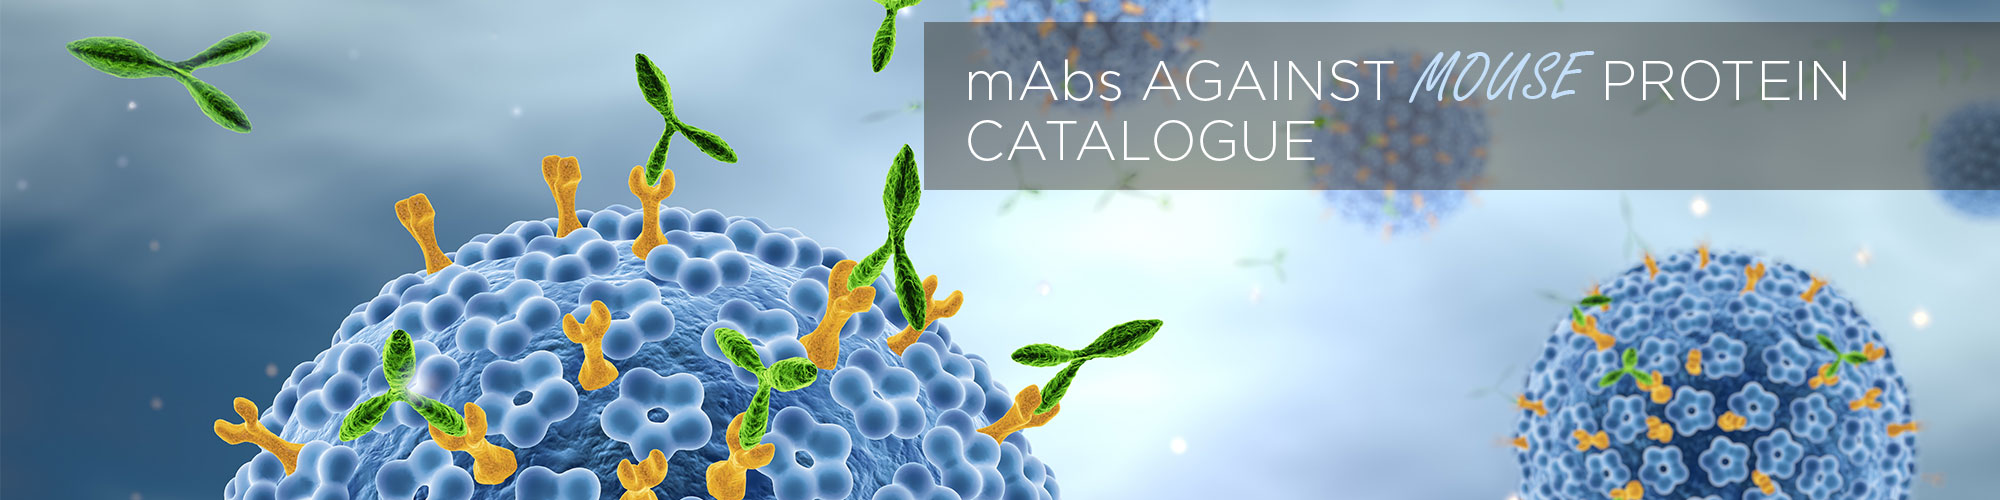 mAbs Against MOUSE Protein Catalogue